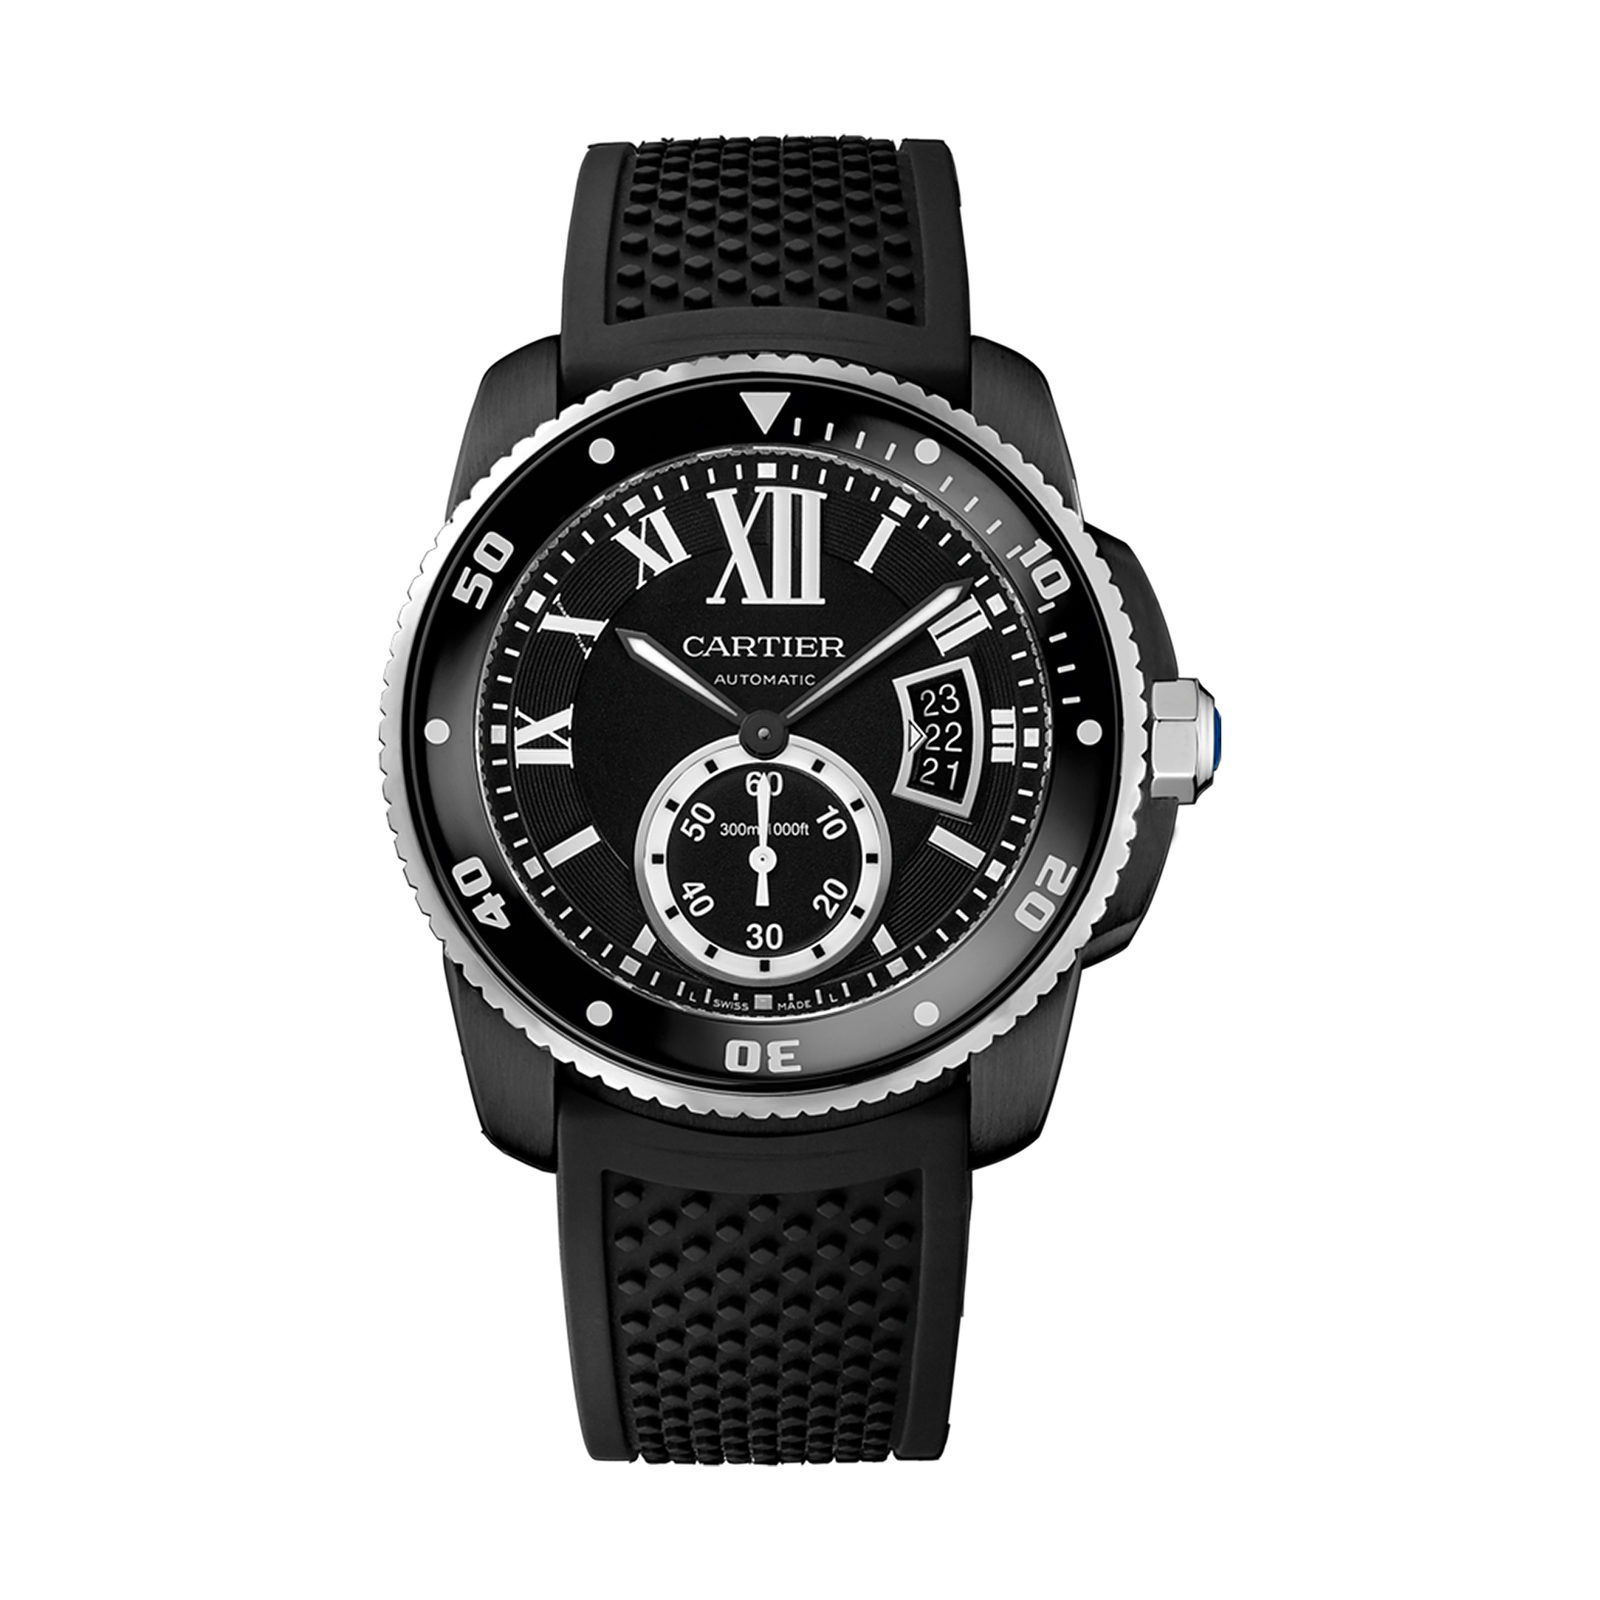 Calibre de Cartier Carbon Diver watch, 42 mm, steel, ADLC, rubber